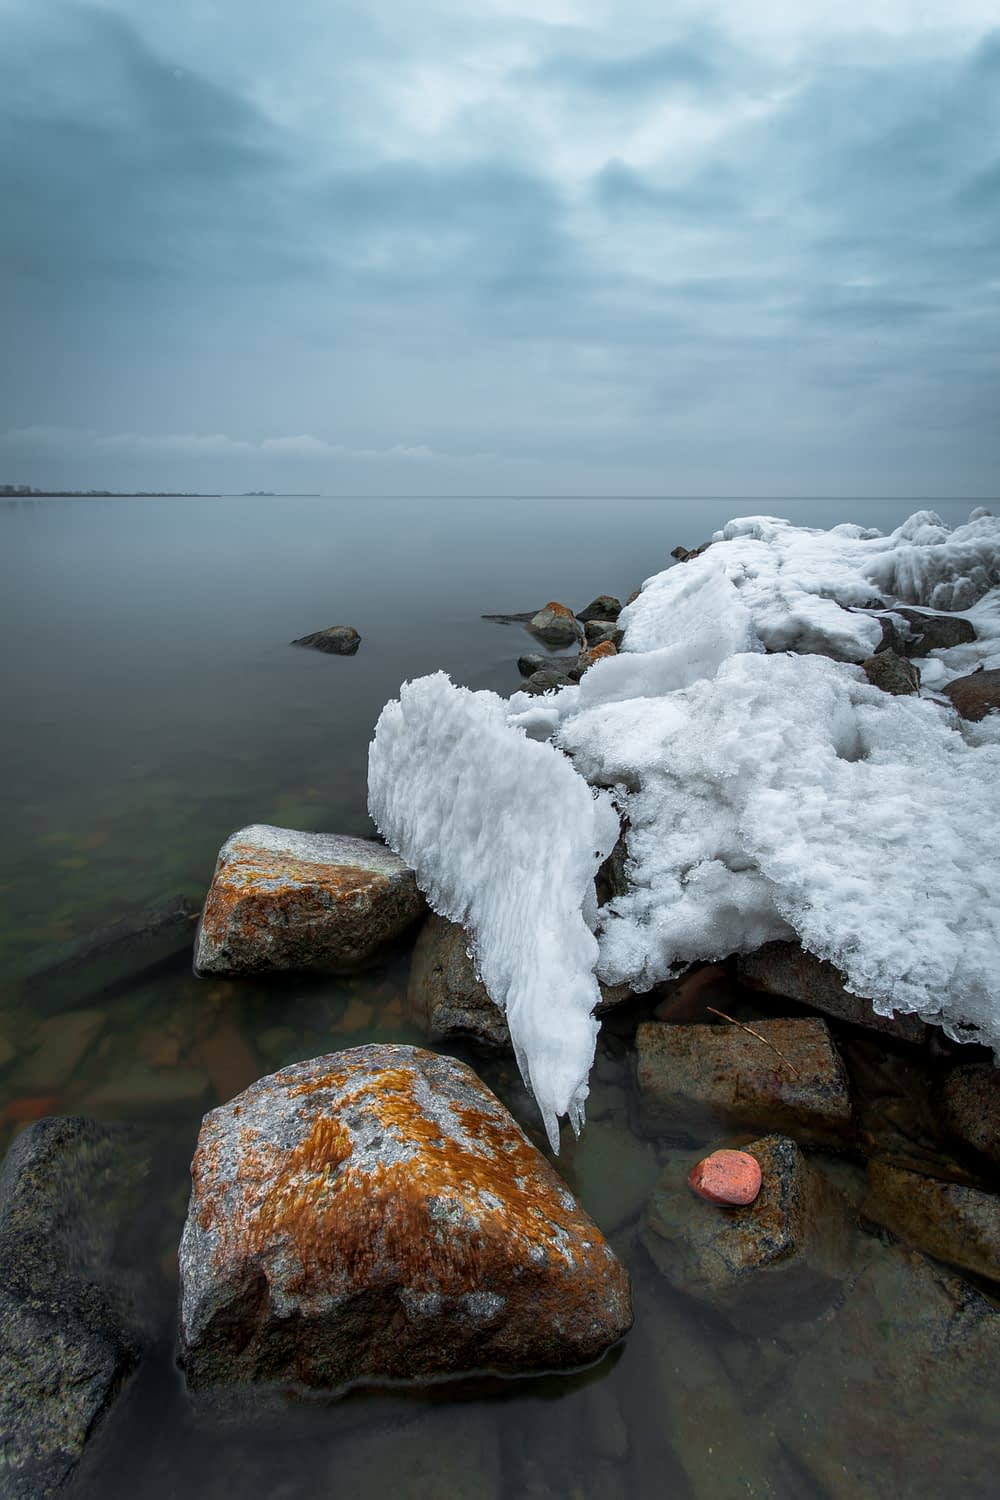 A landscape photograph of the Dutch coast with ice covered rocks in the foreground.